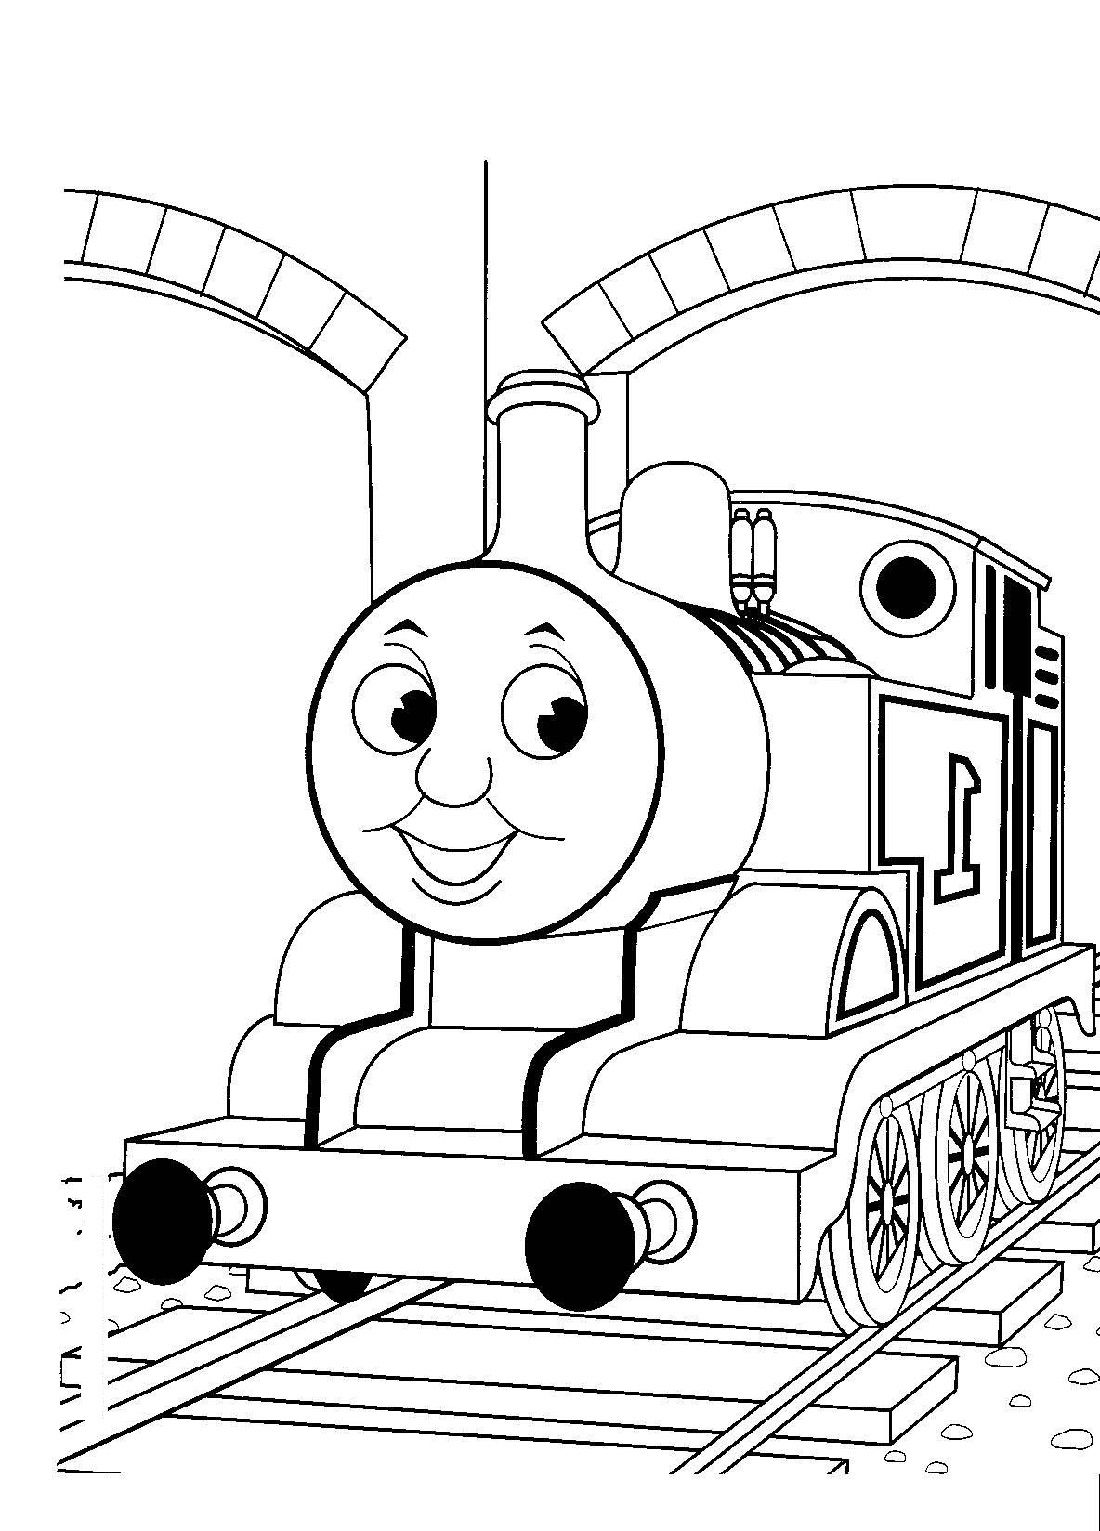 Christmas Train Coloring Pages Toy - Coloring Home | 1531x1100